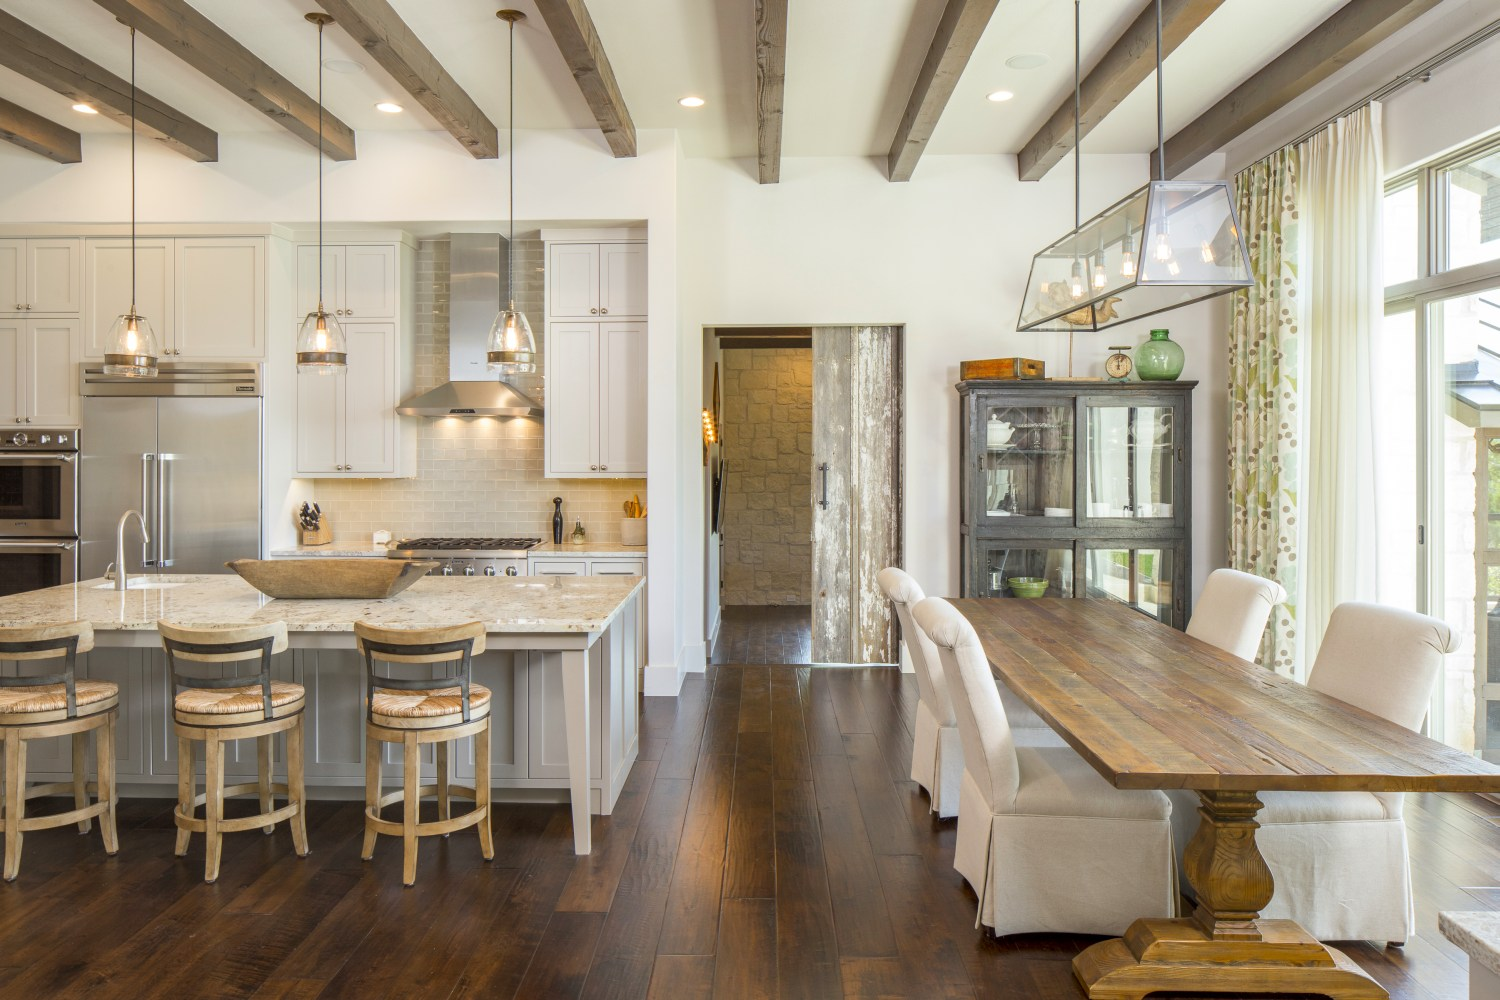 Architecture-Home-Contemporary-European-Farmhouse-27-Dining-Kitchen.jpg